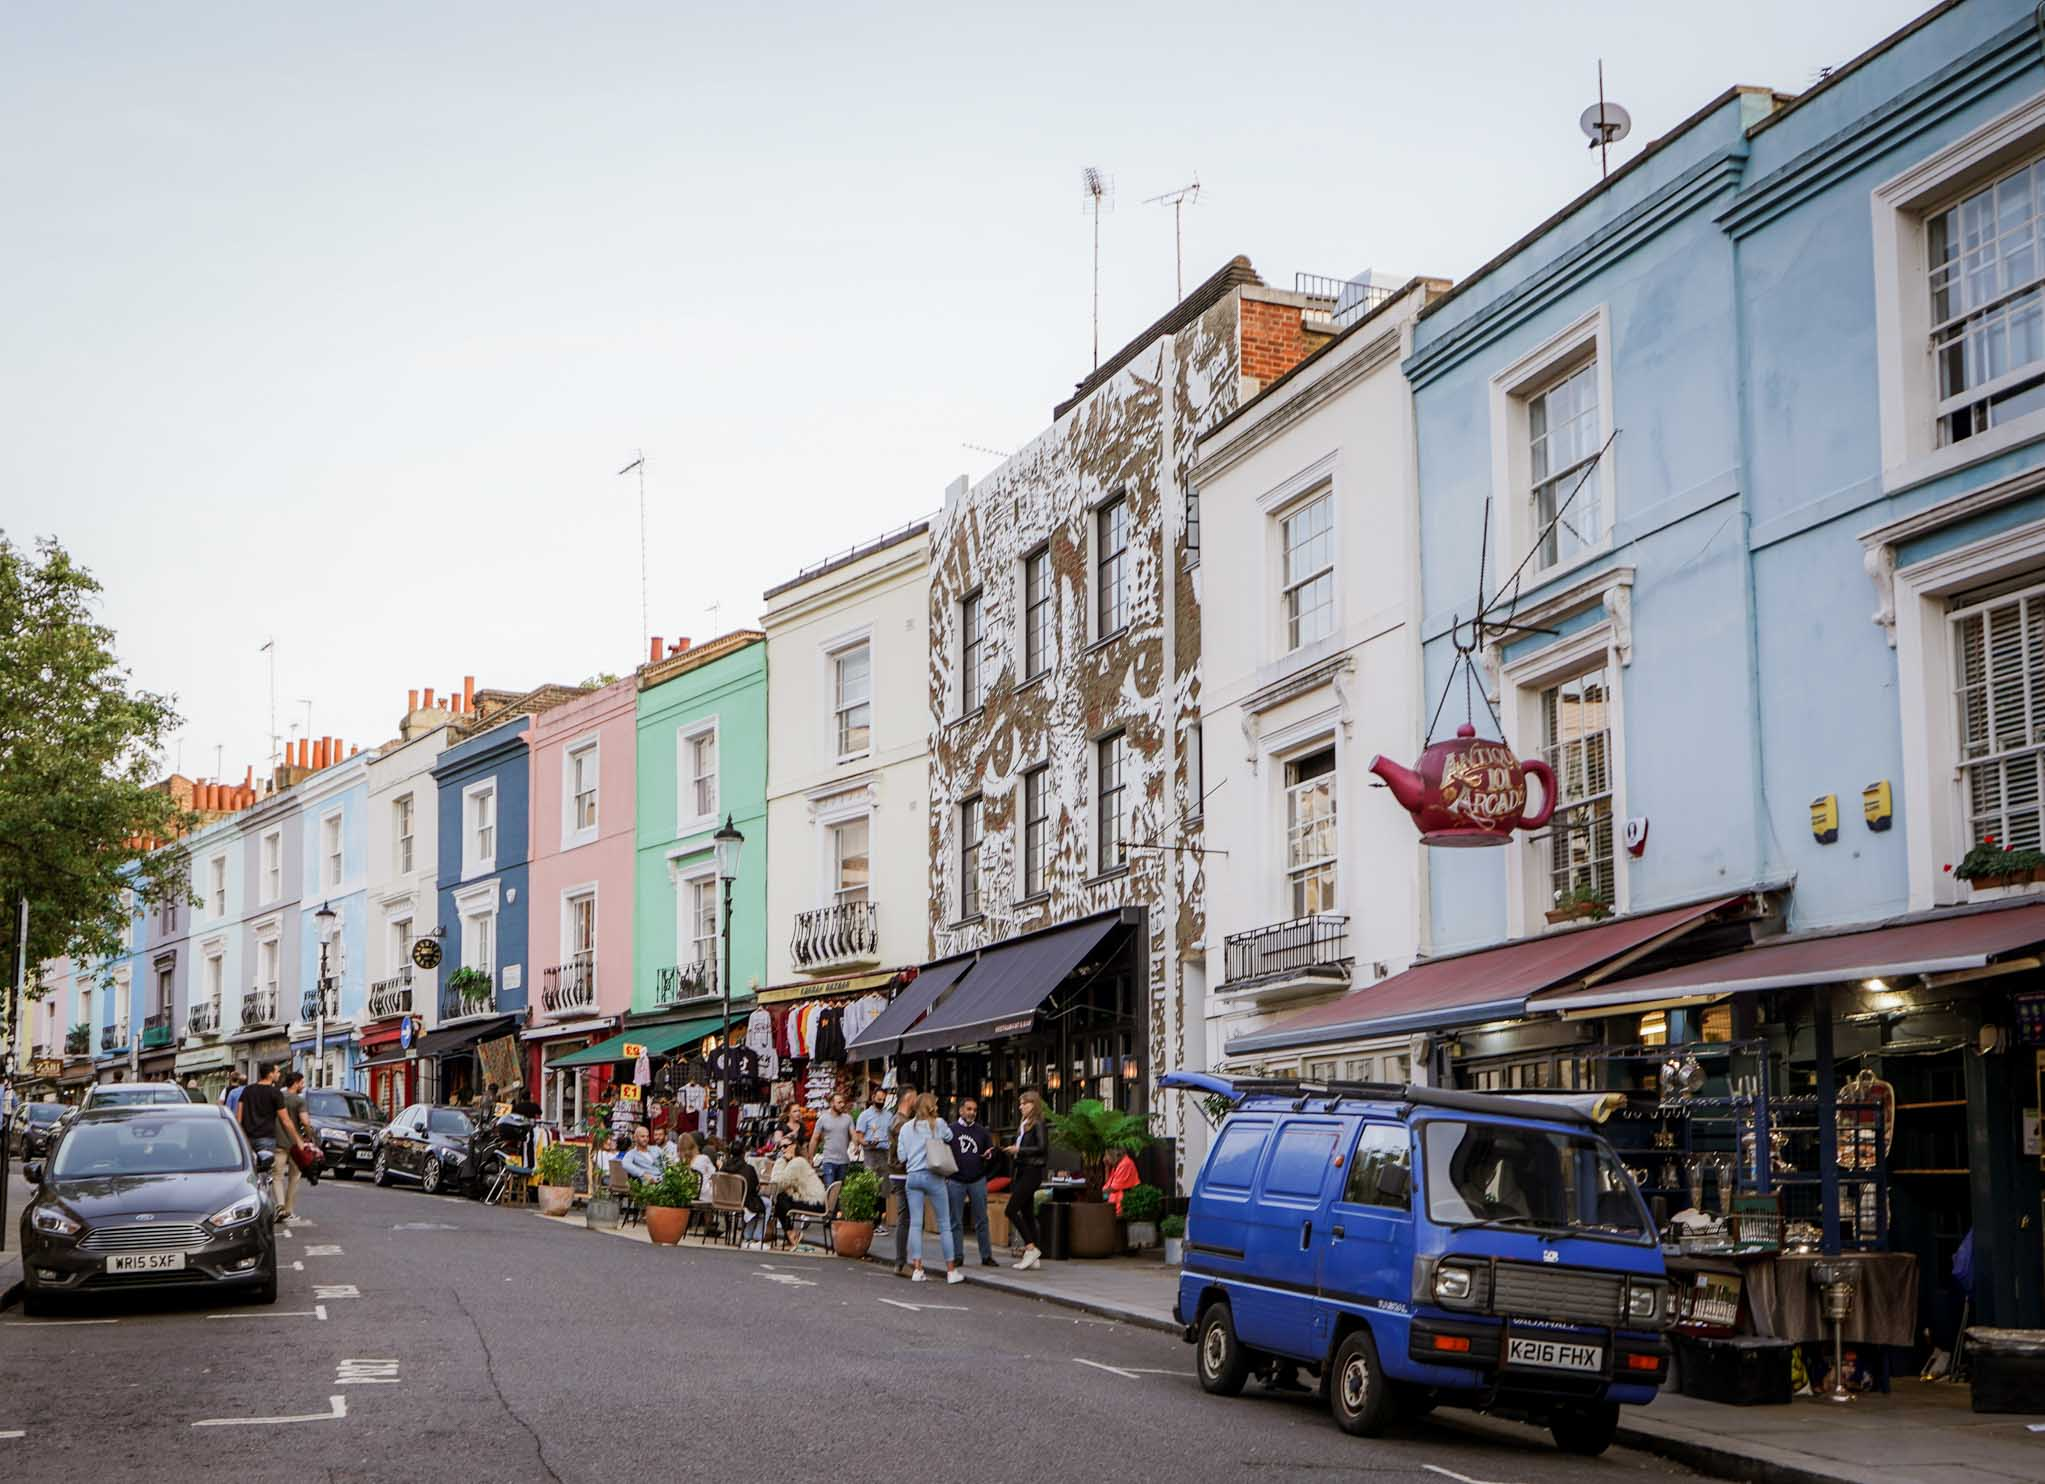 notting hill attractions